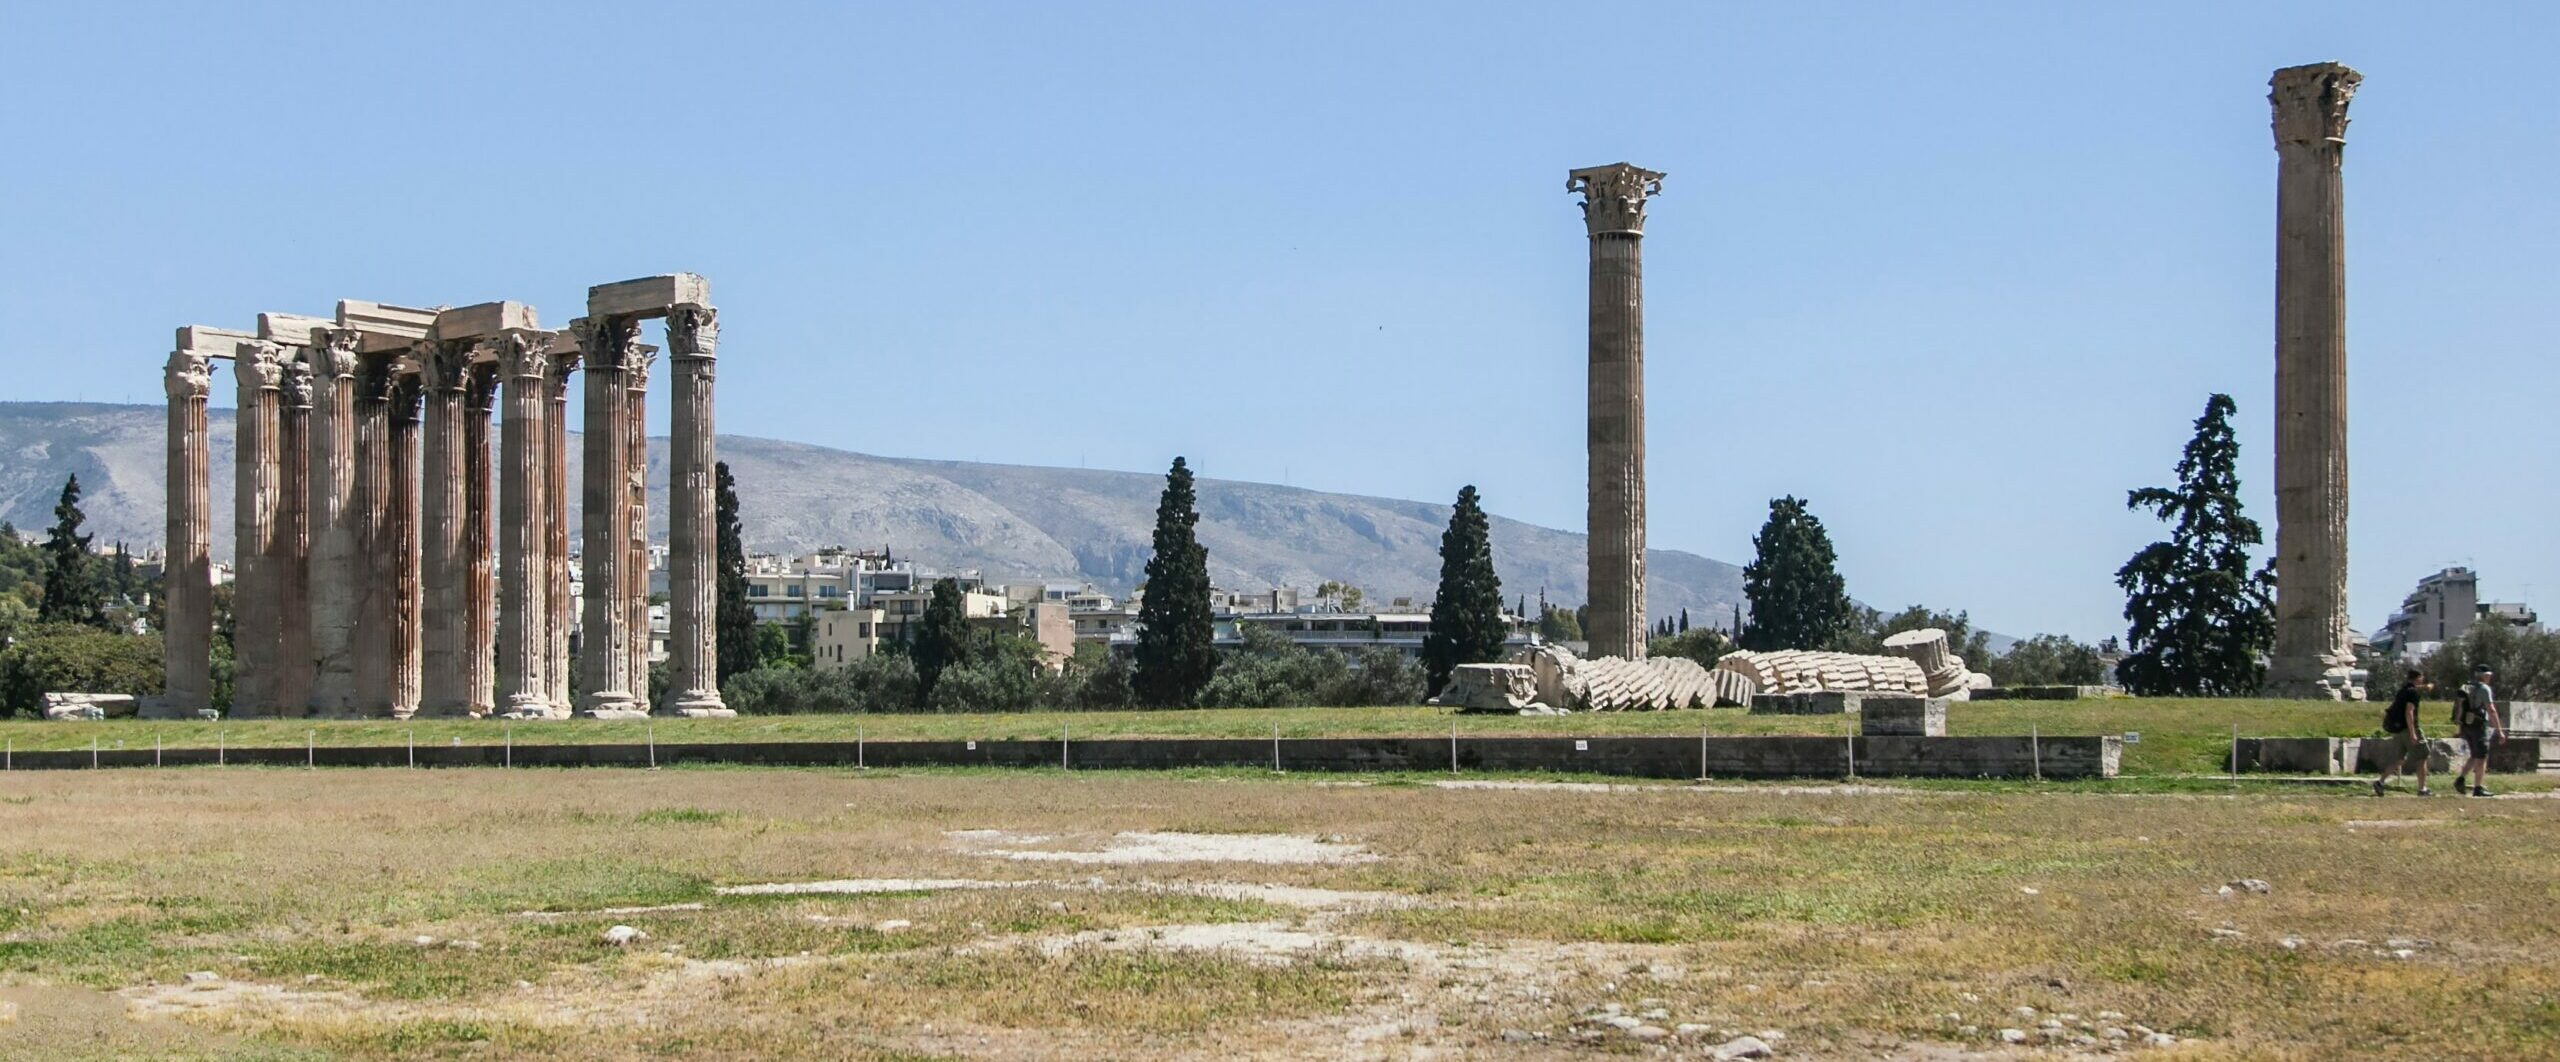 The columns of Olympian Zeus Columns: why it took years to solve the mystery